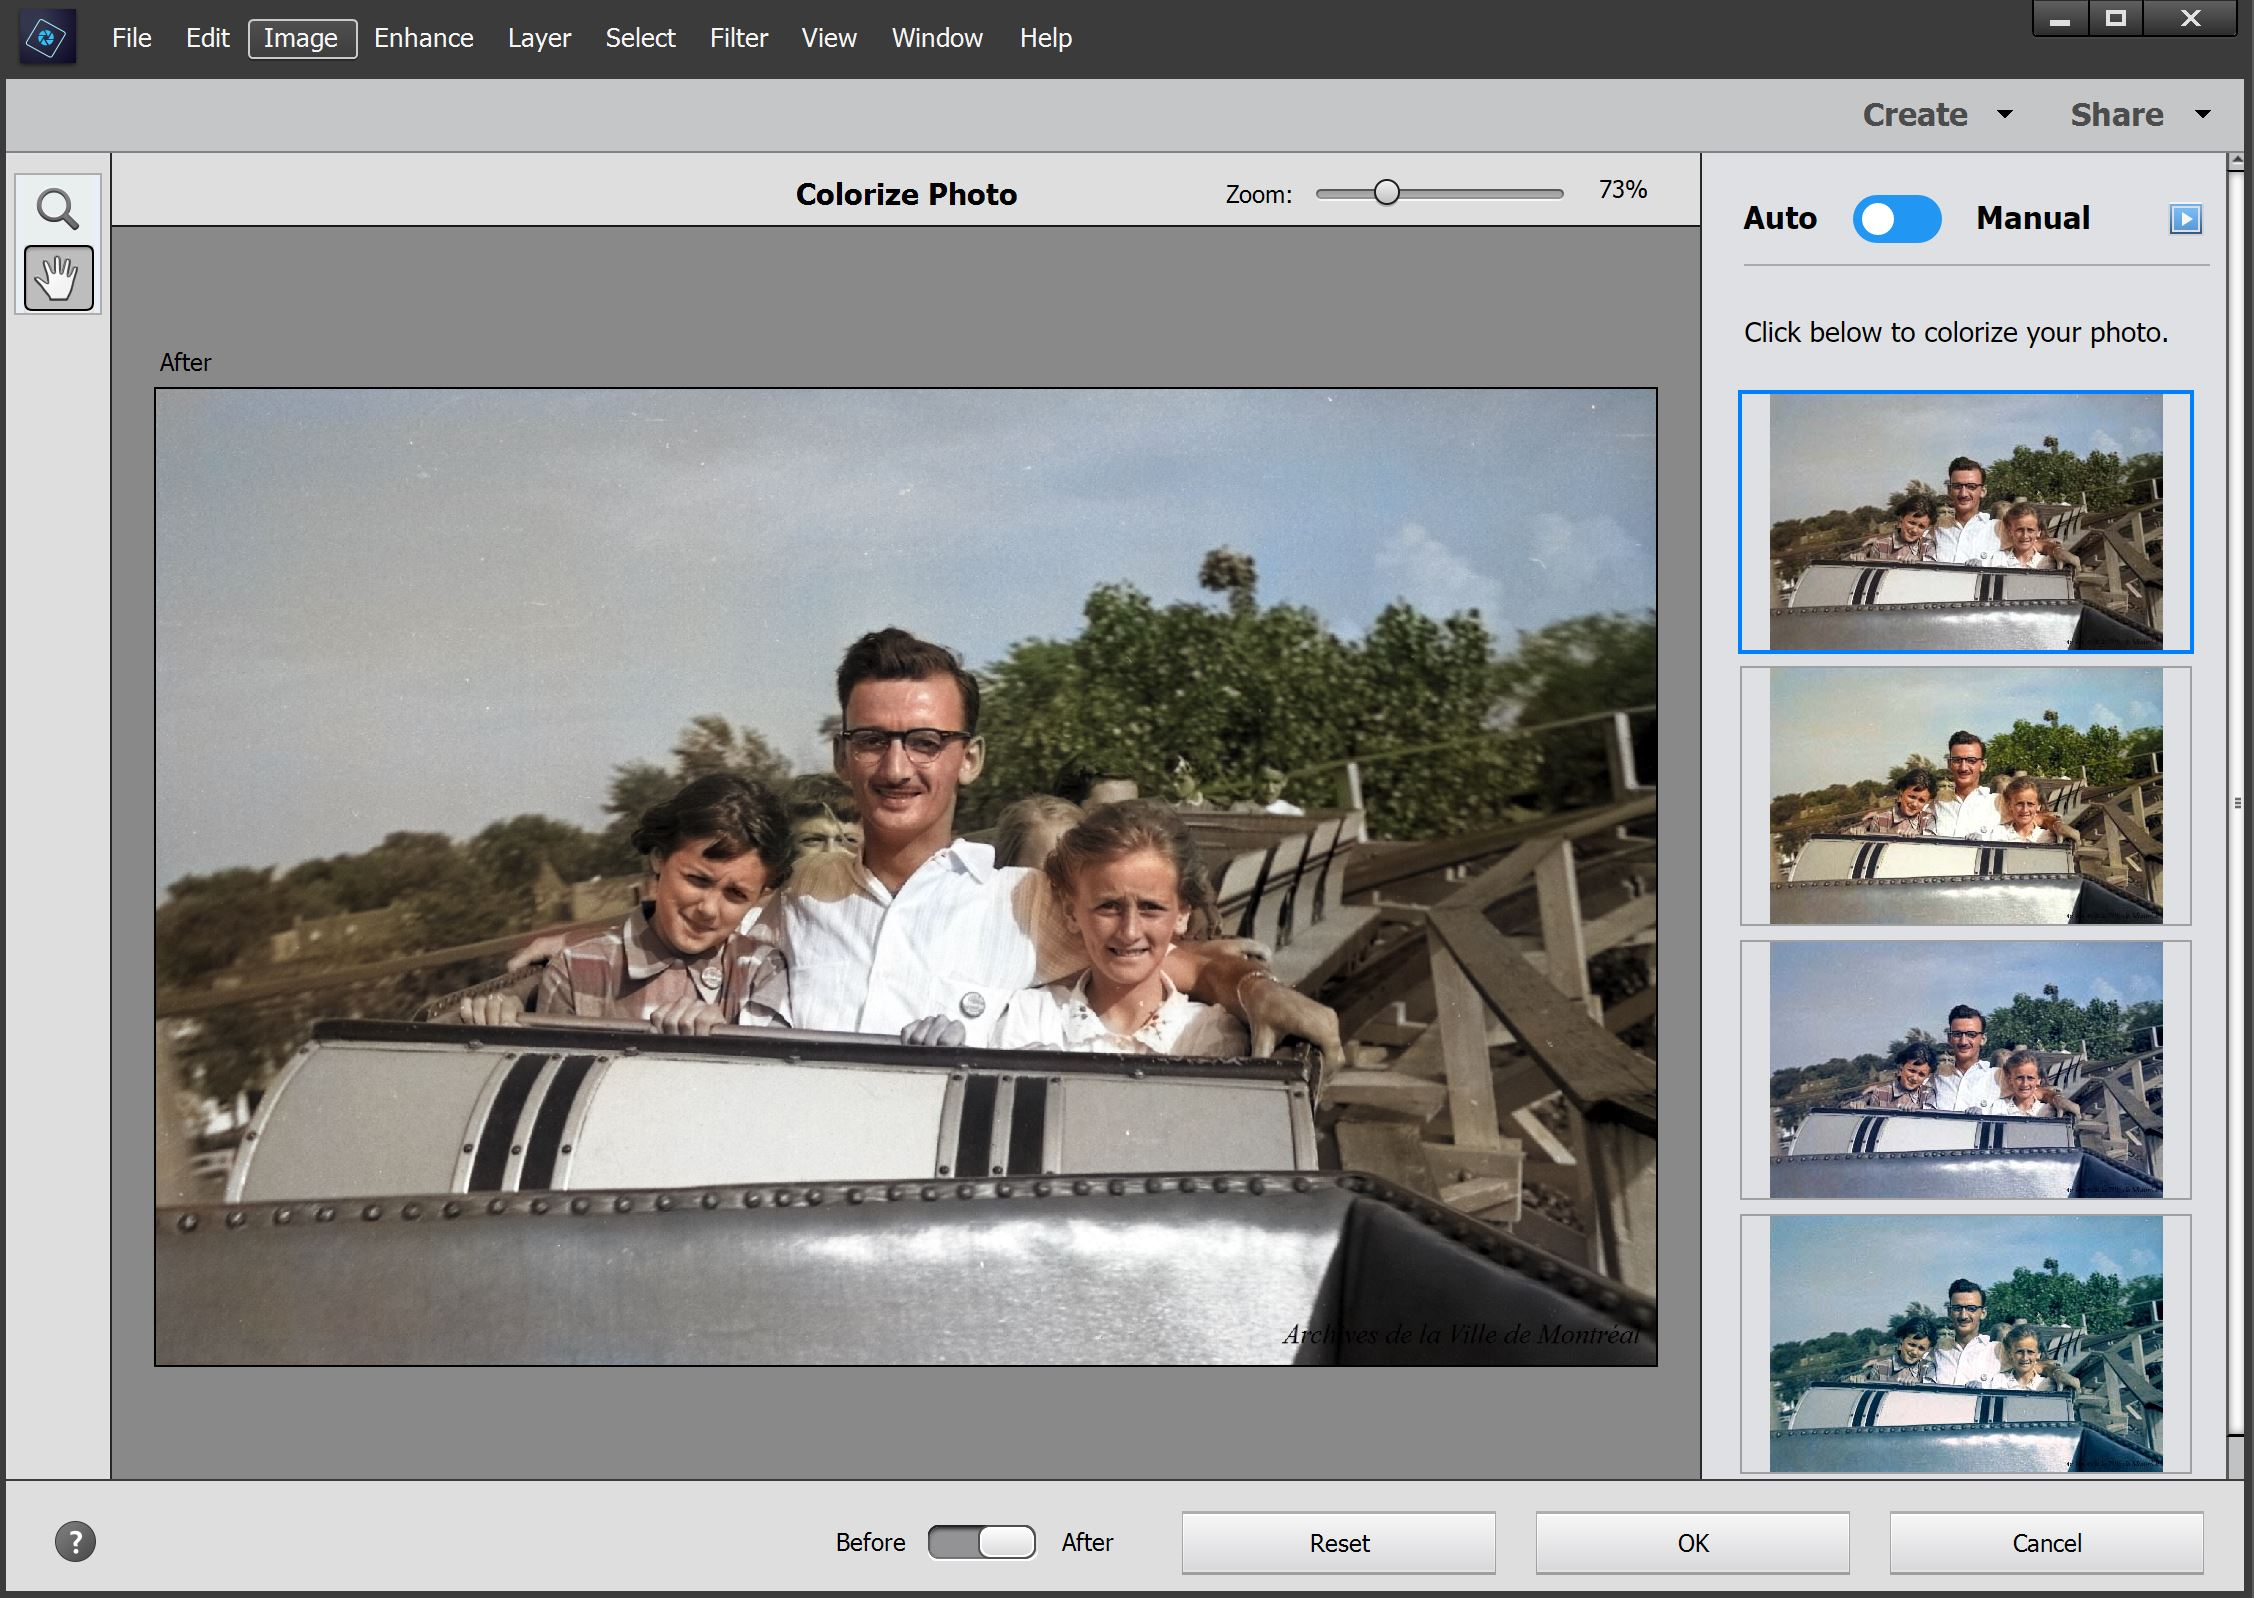 Photoshop Elements 2020 Jai Vu Mon Grand Père En Couleur